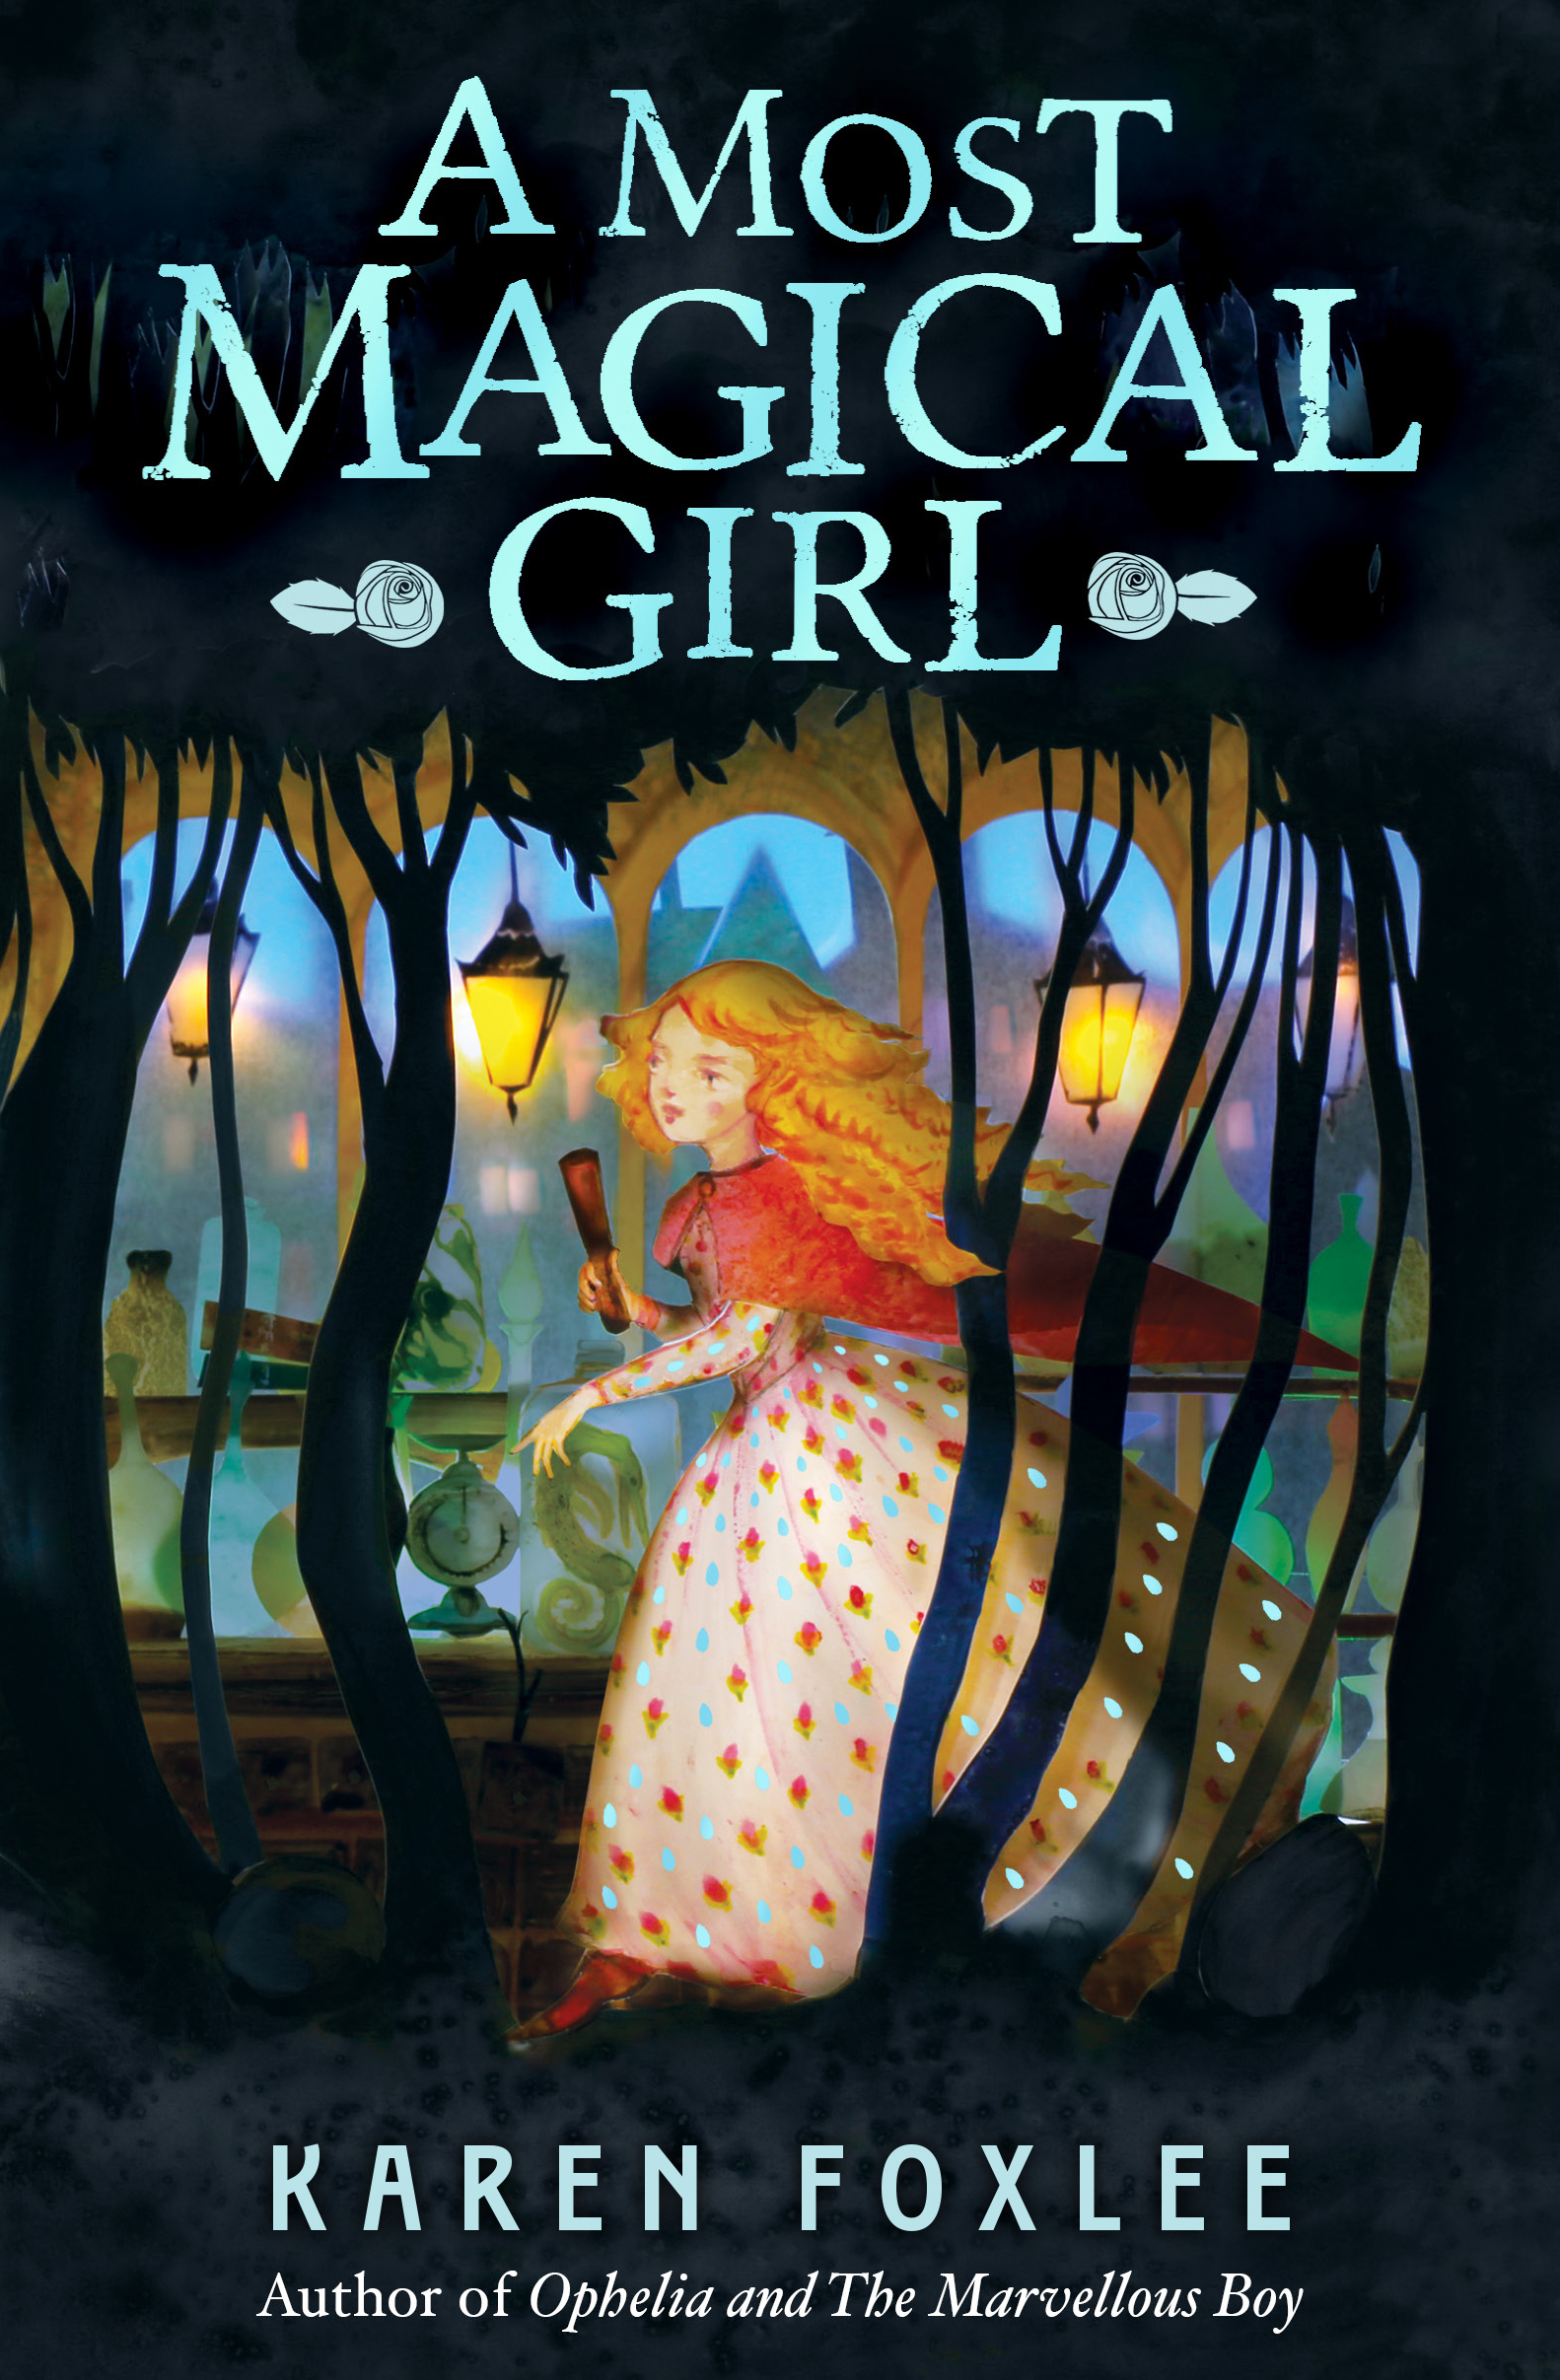 MG Book Review: A Most Magical Girl by Karen Foxlee